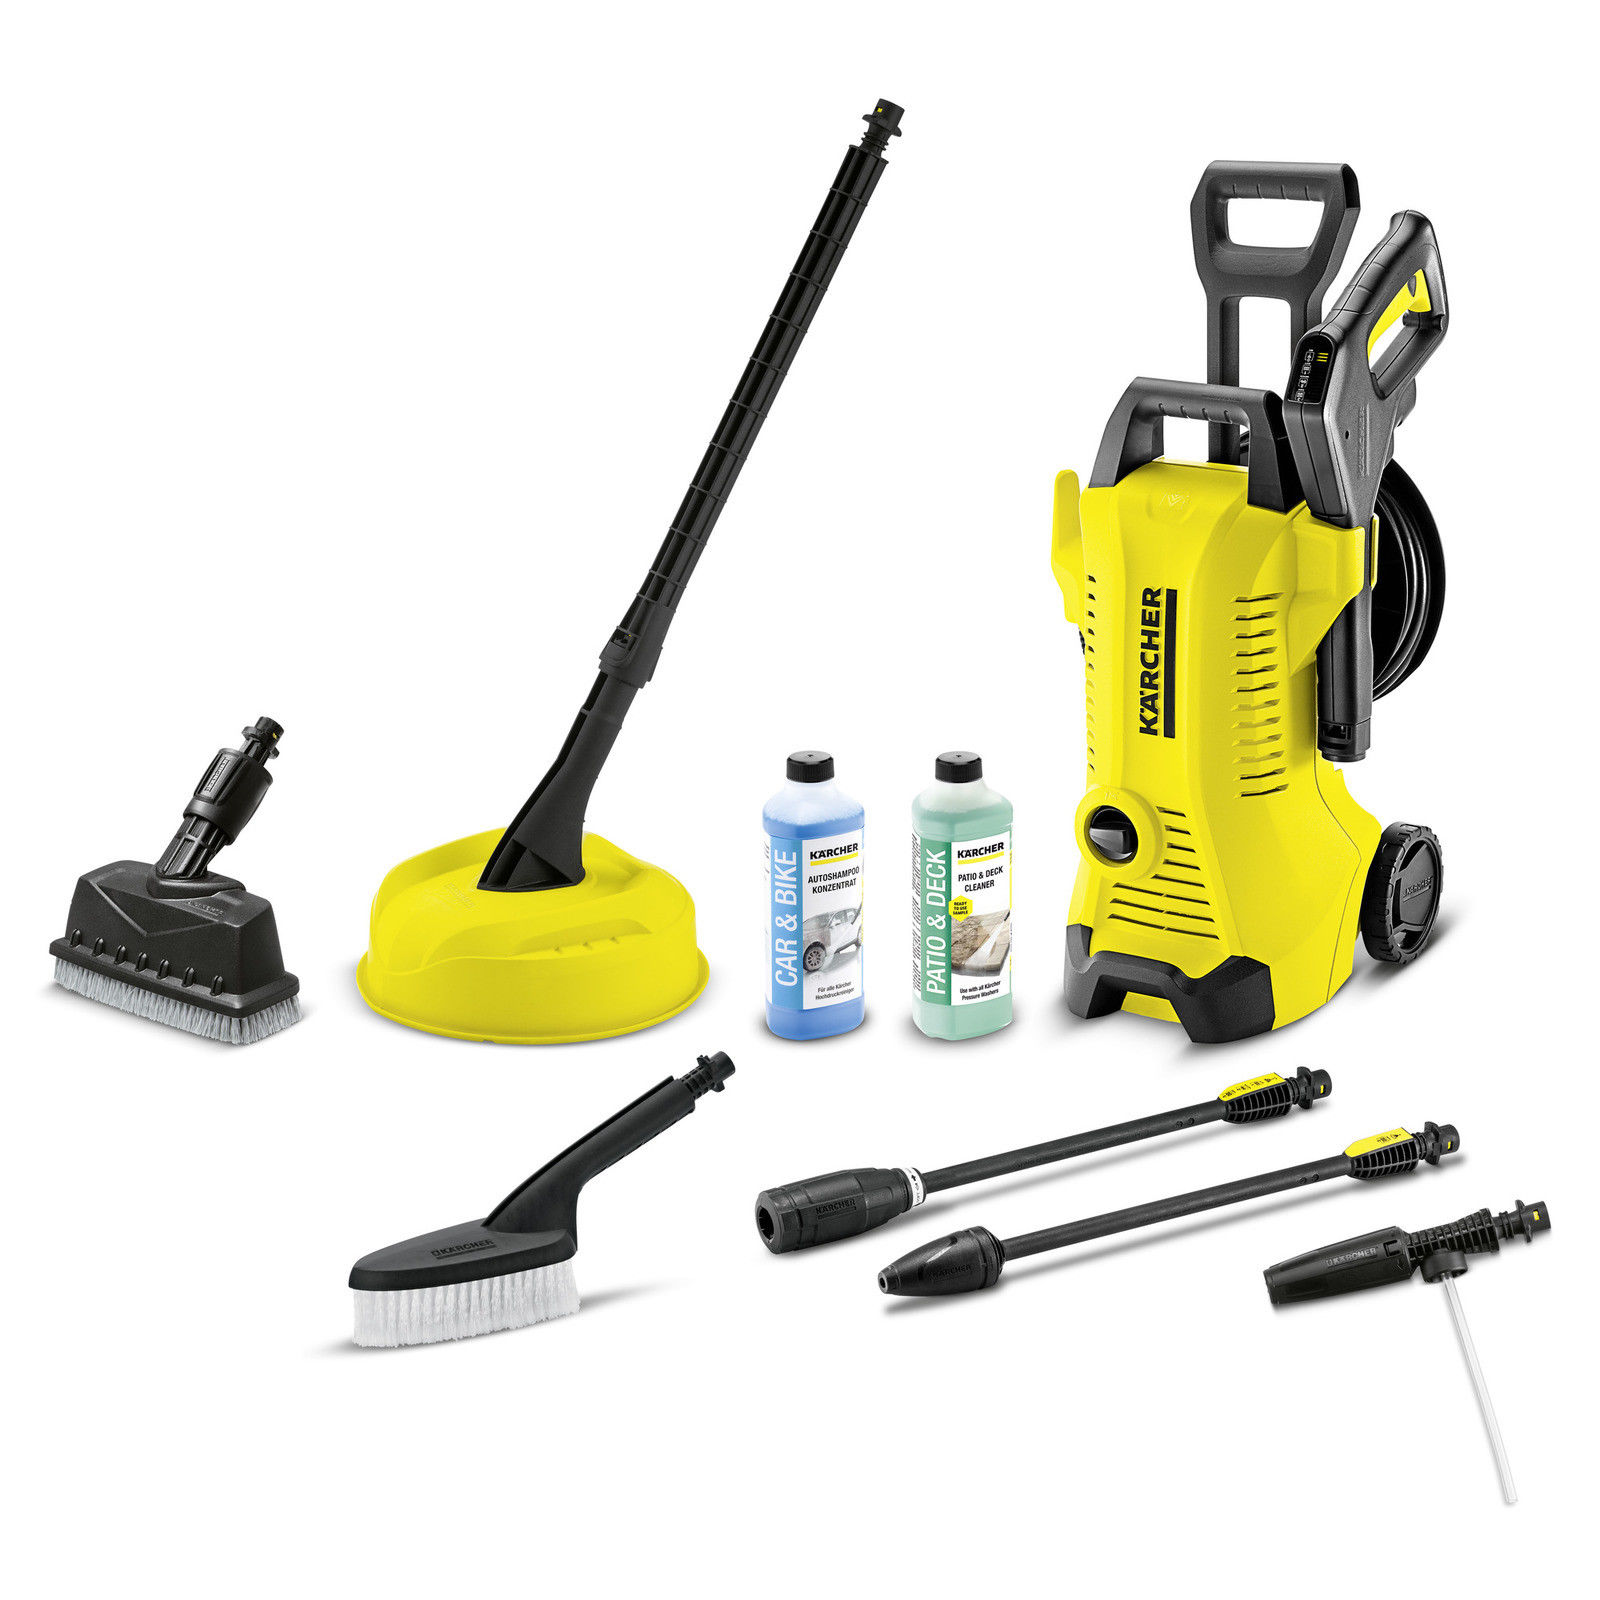 Karcher K7 Premium Full Control Home Karcher K3 Premium Pressure Washer Full Control Car Home Deck